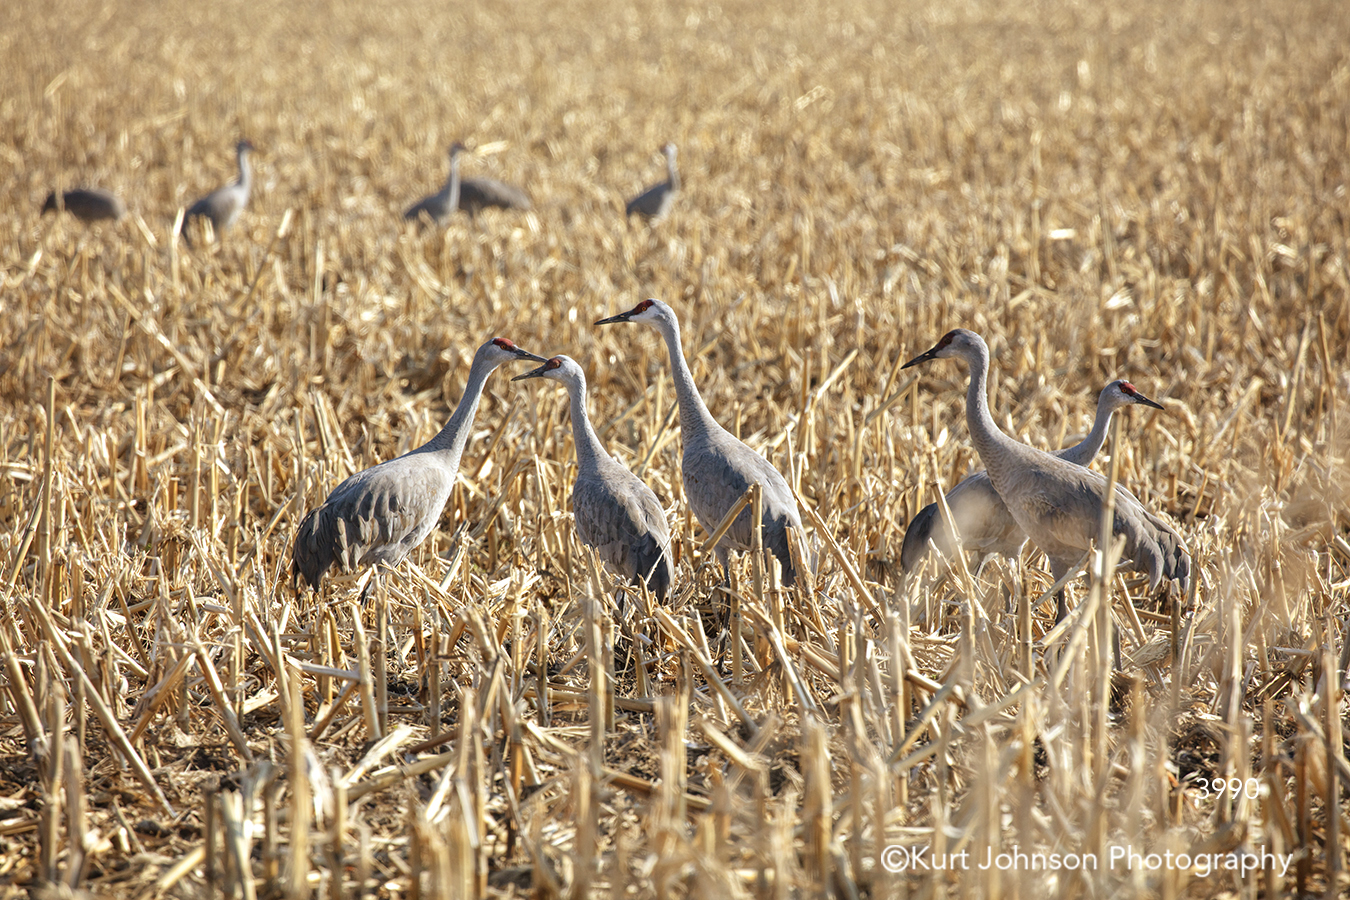 sandhill crane cranes midwest bird flying sandhills yellow wheat field landscape animal wildlife